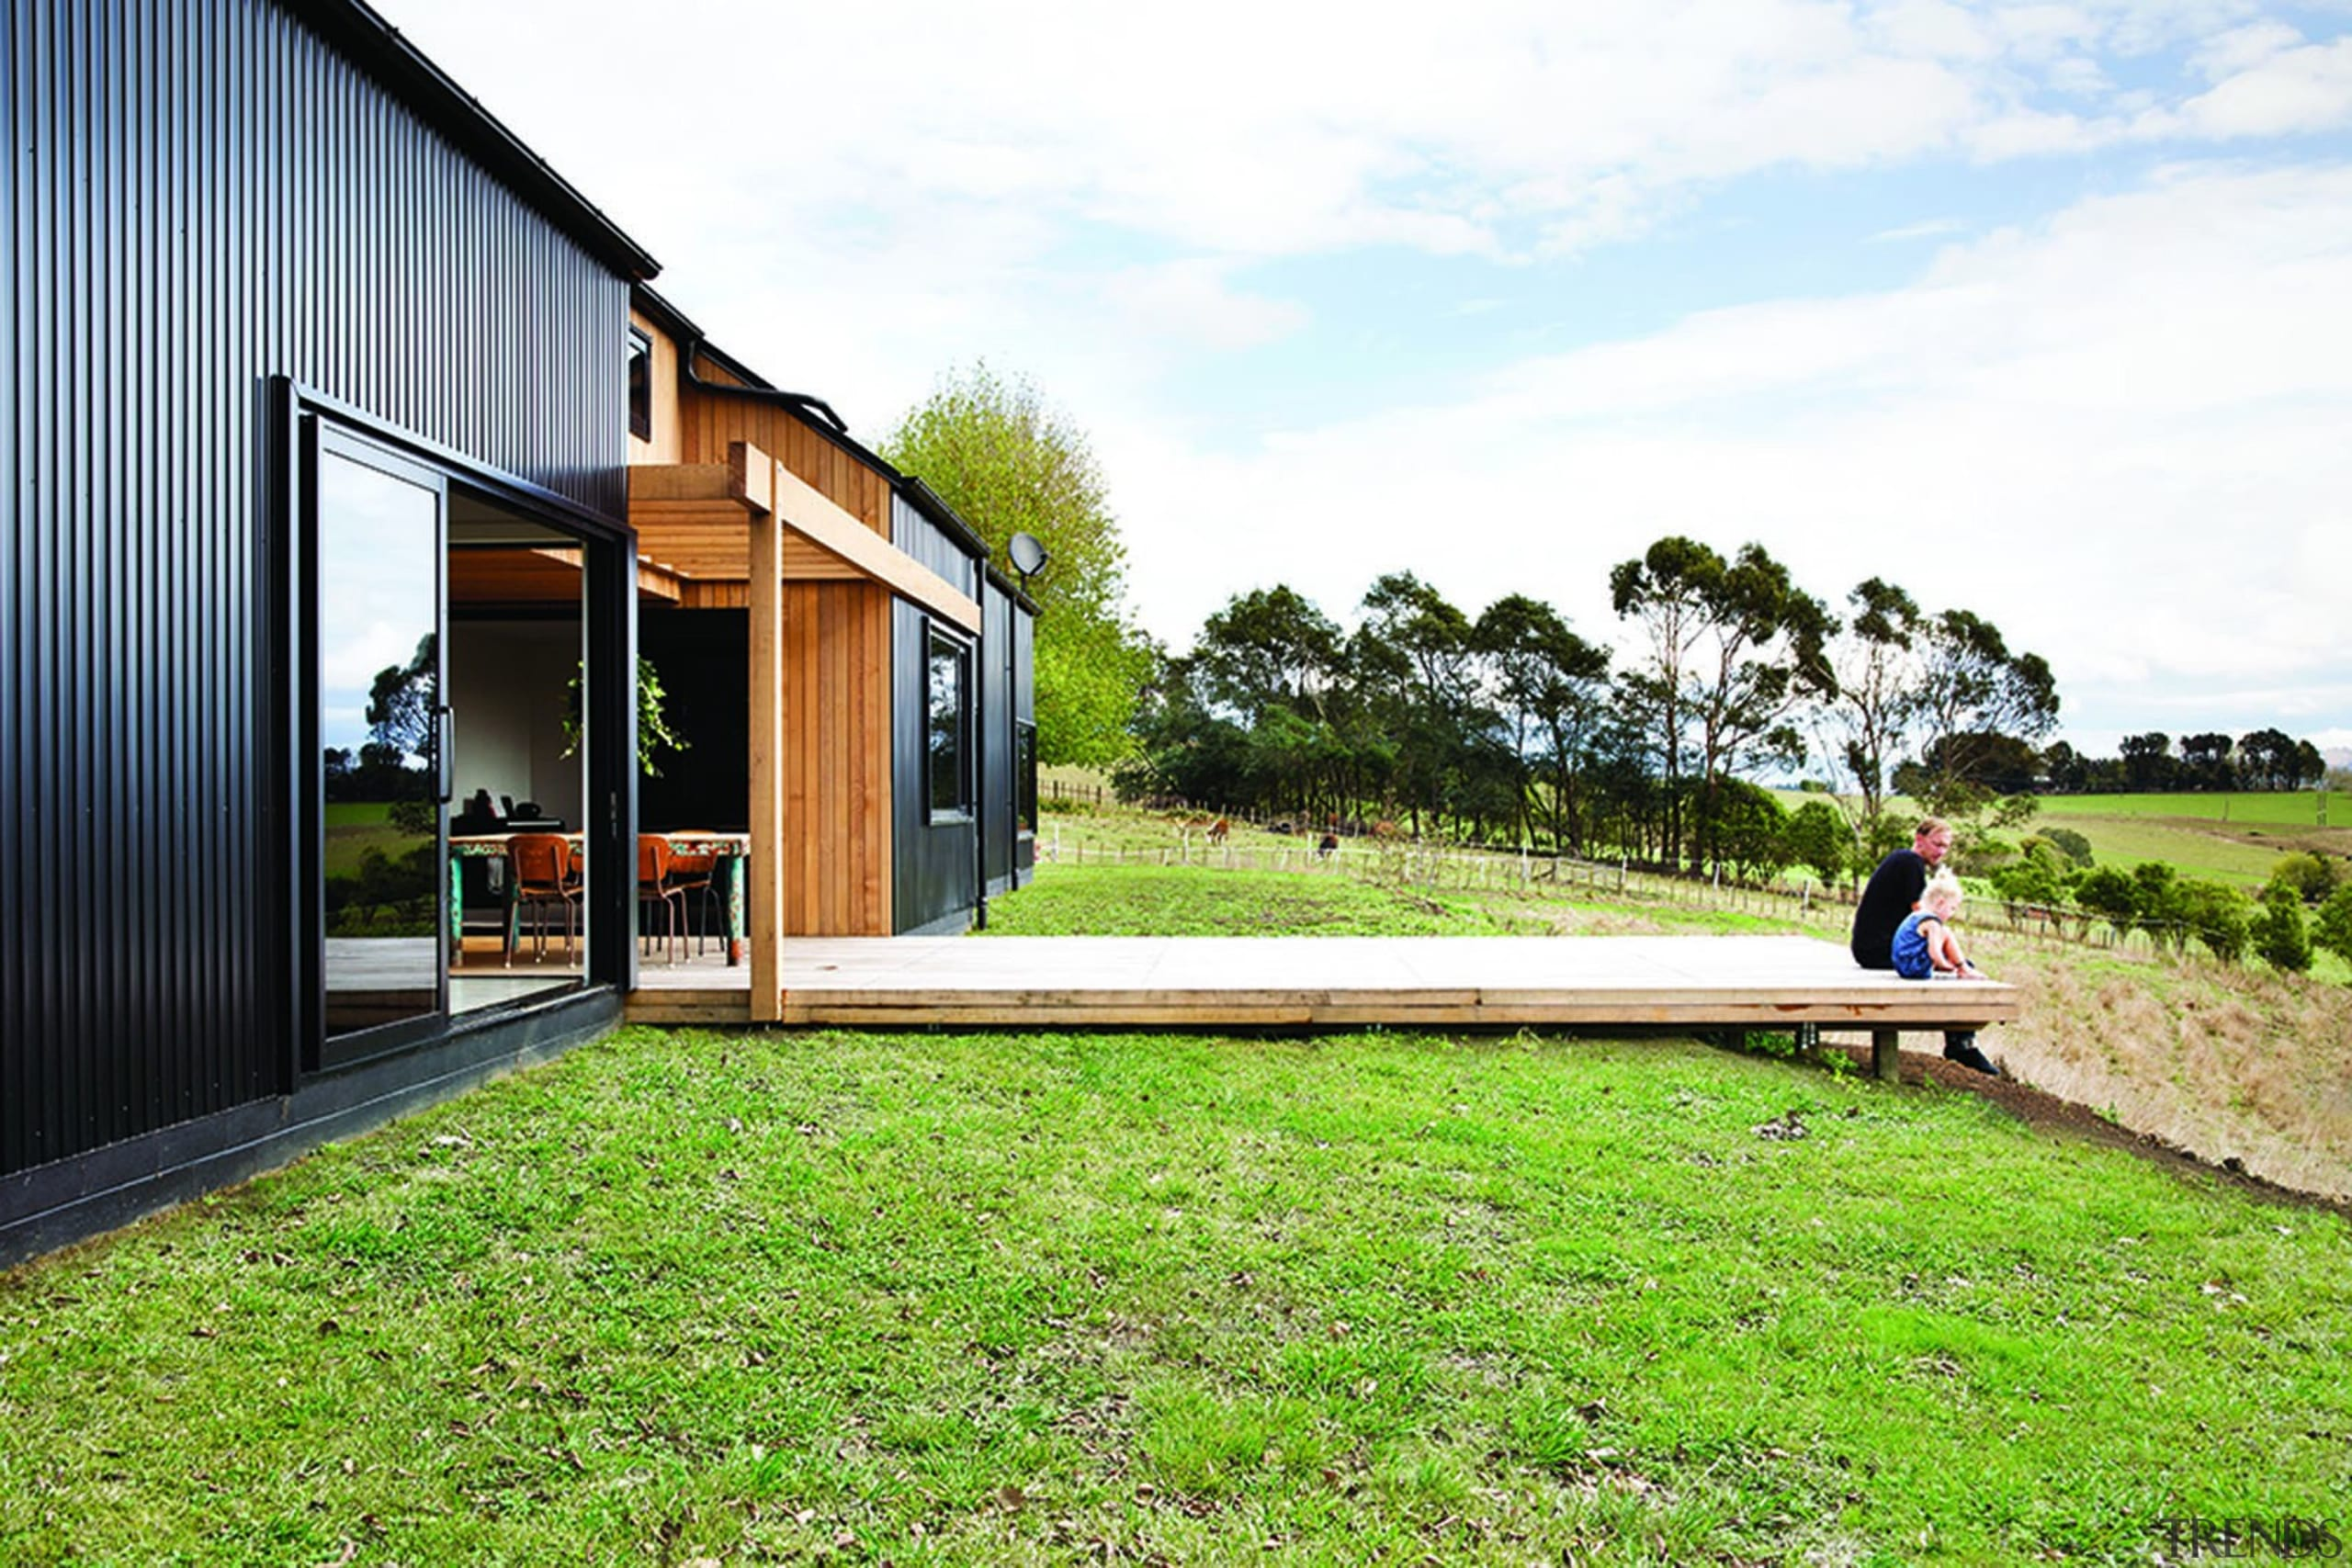 Black Barn - Dimondclad Rib 50 in Black architecture, cottage, facade, grass, home, house, lawn, leisure, real estate, residential area, yard, white, green